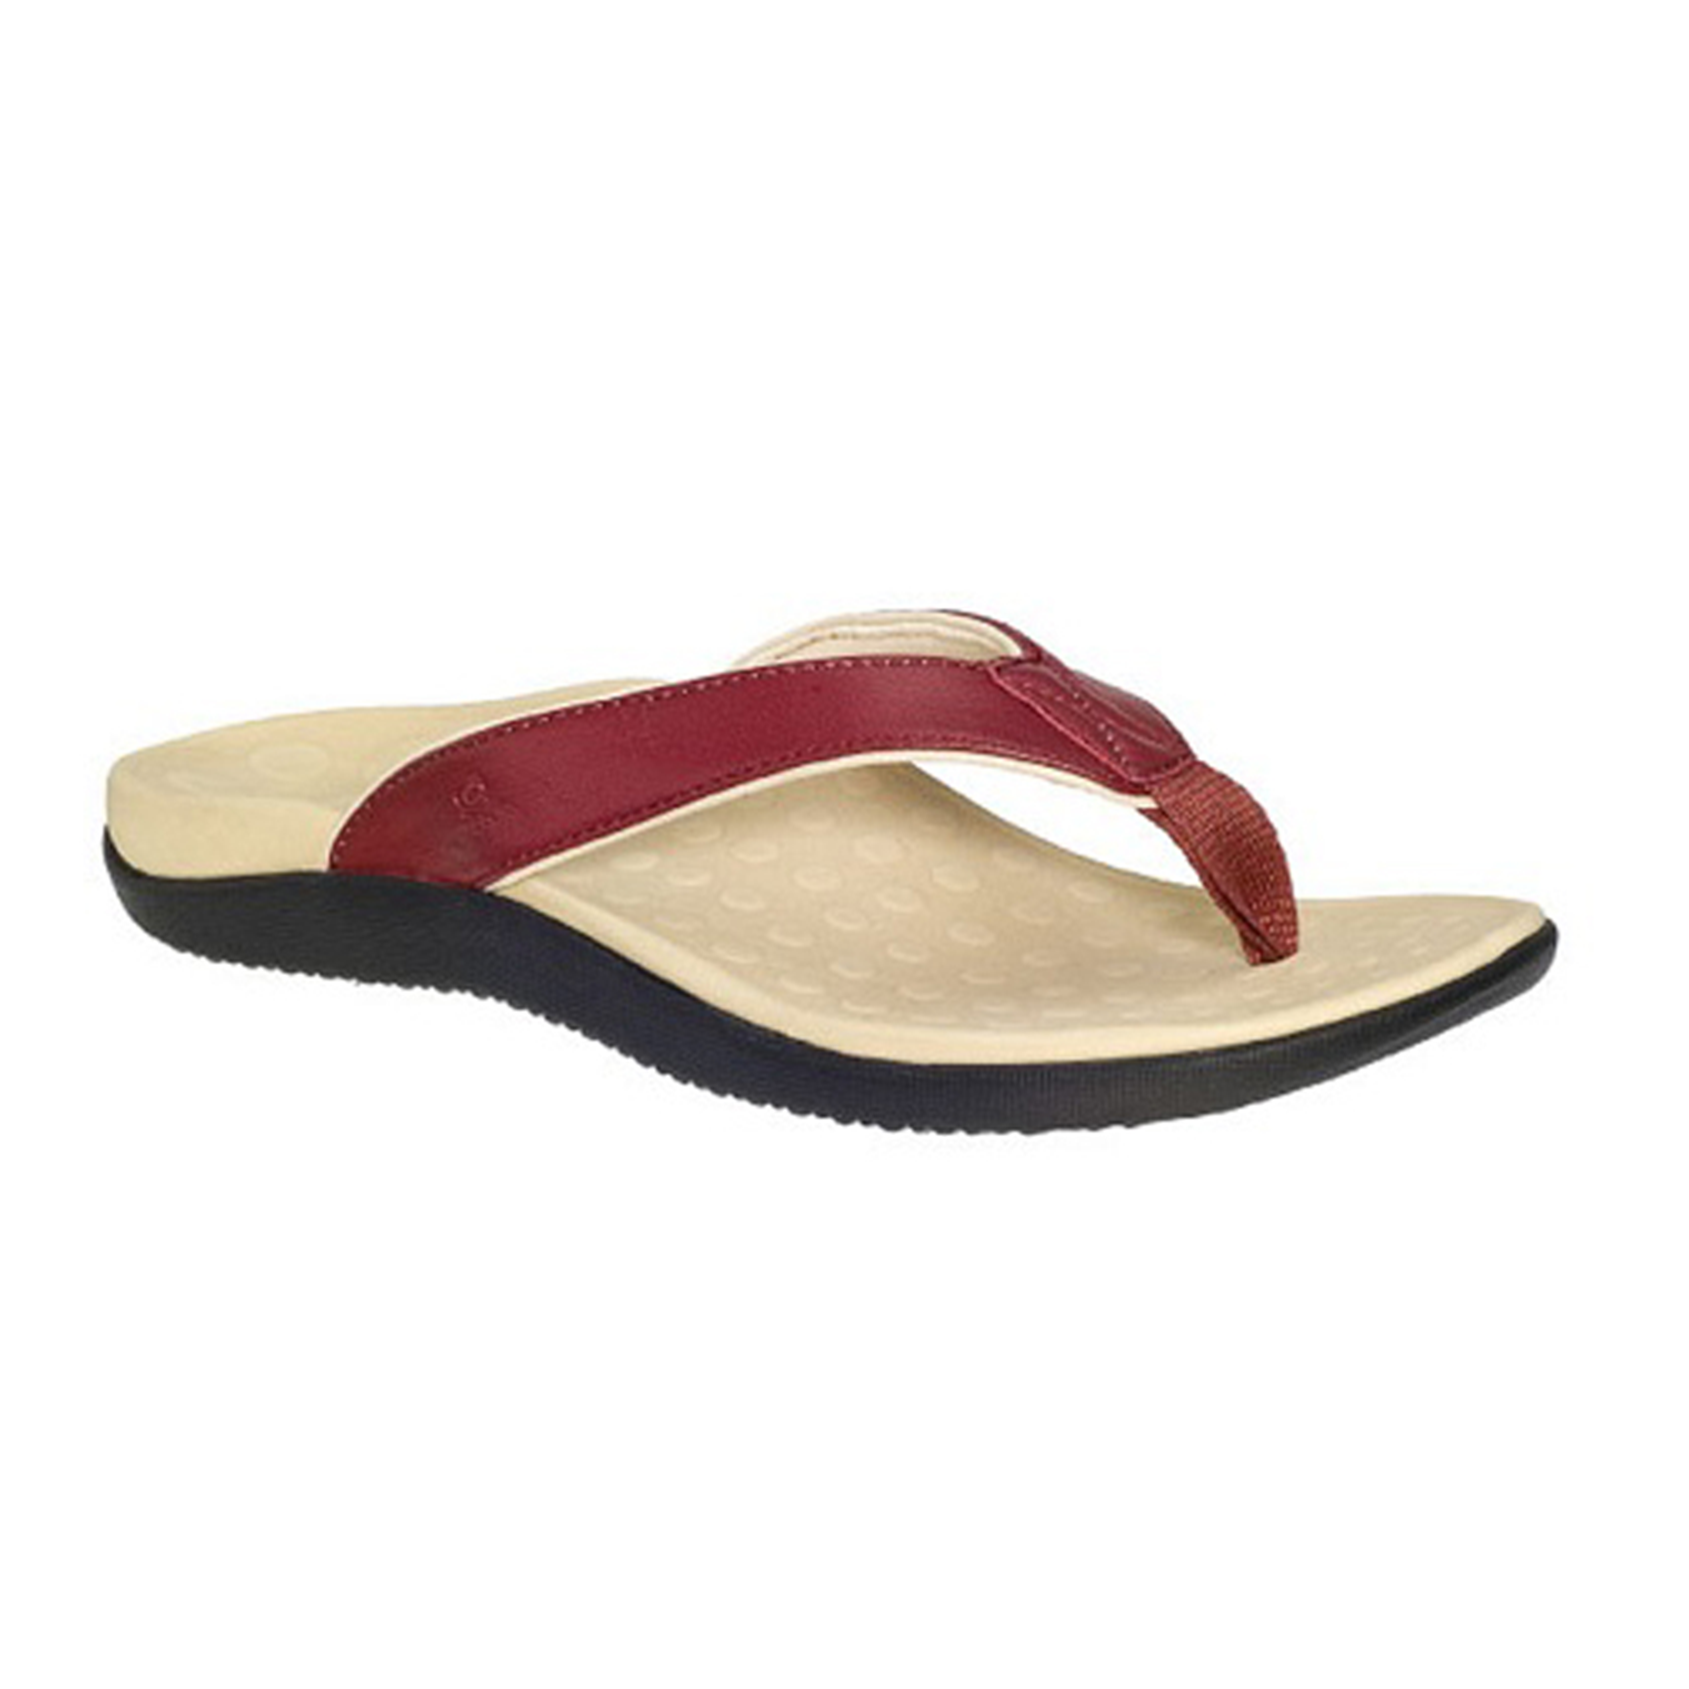 4b4538b094d Orthaheel Sonoma Thongs For Women - FootShop